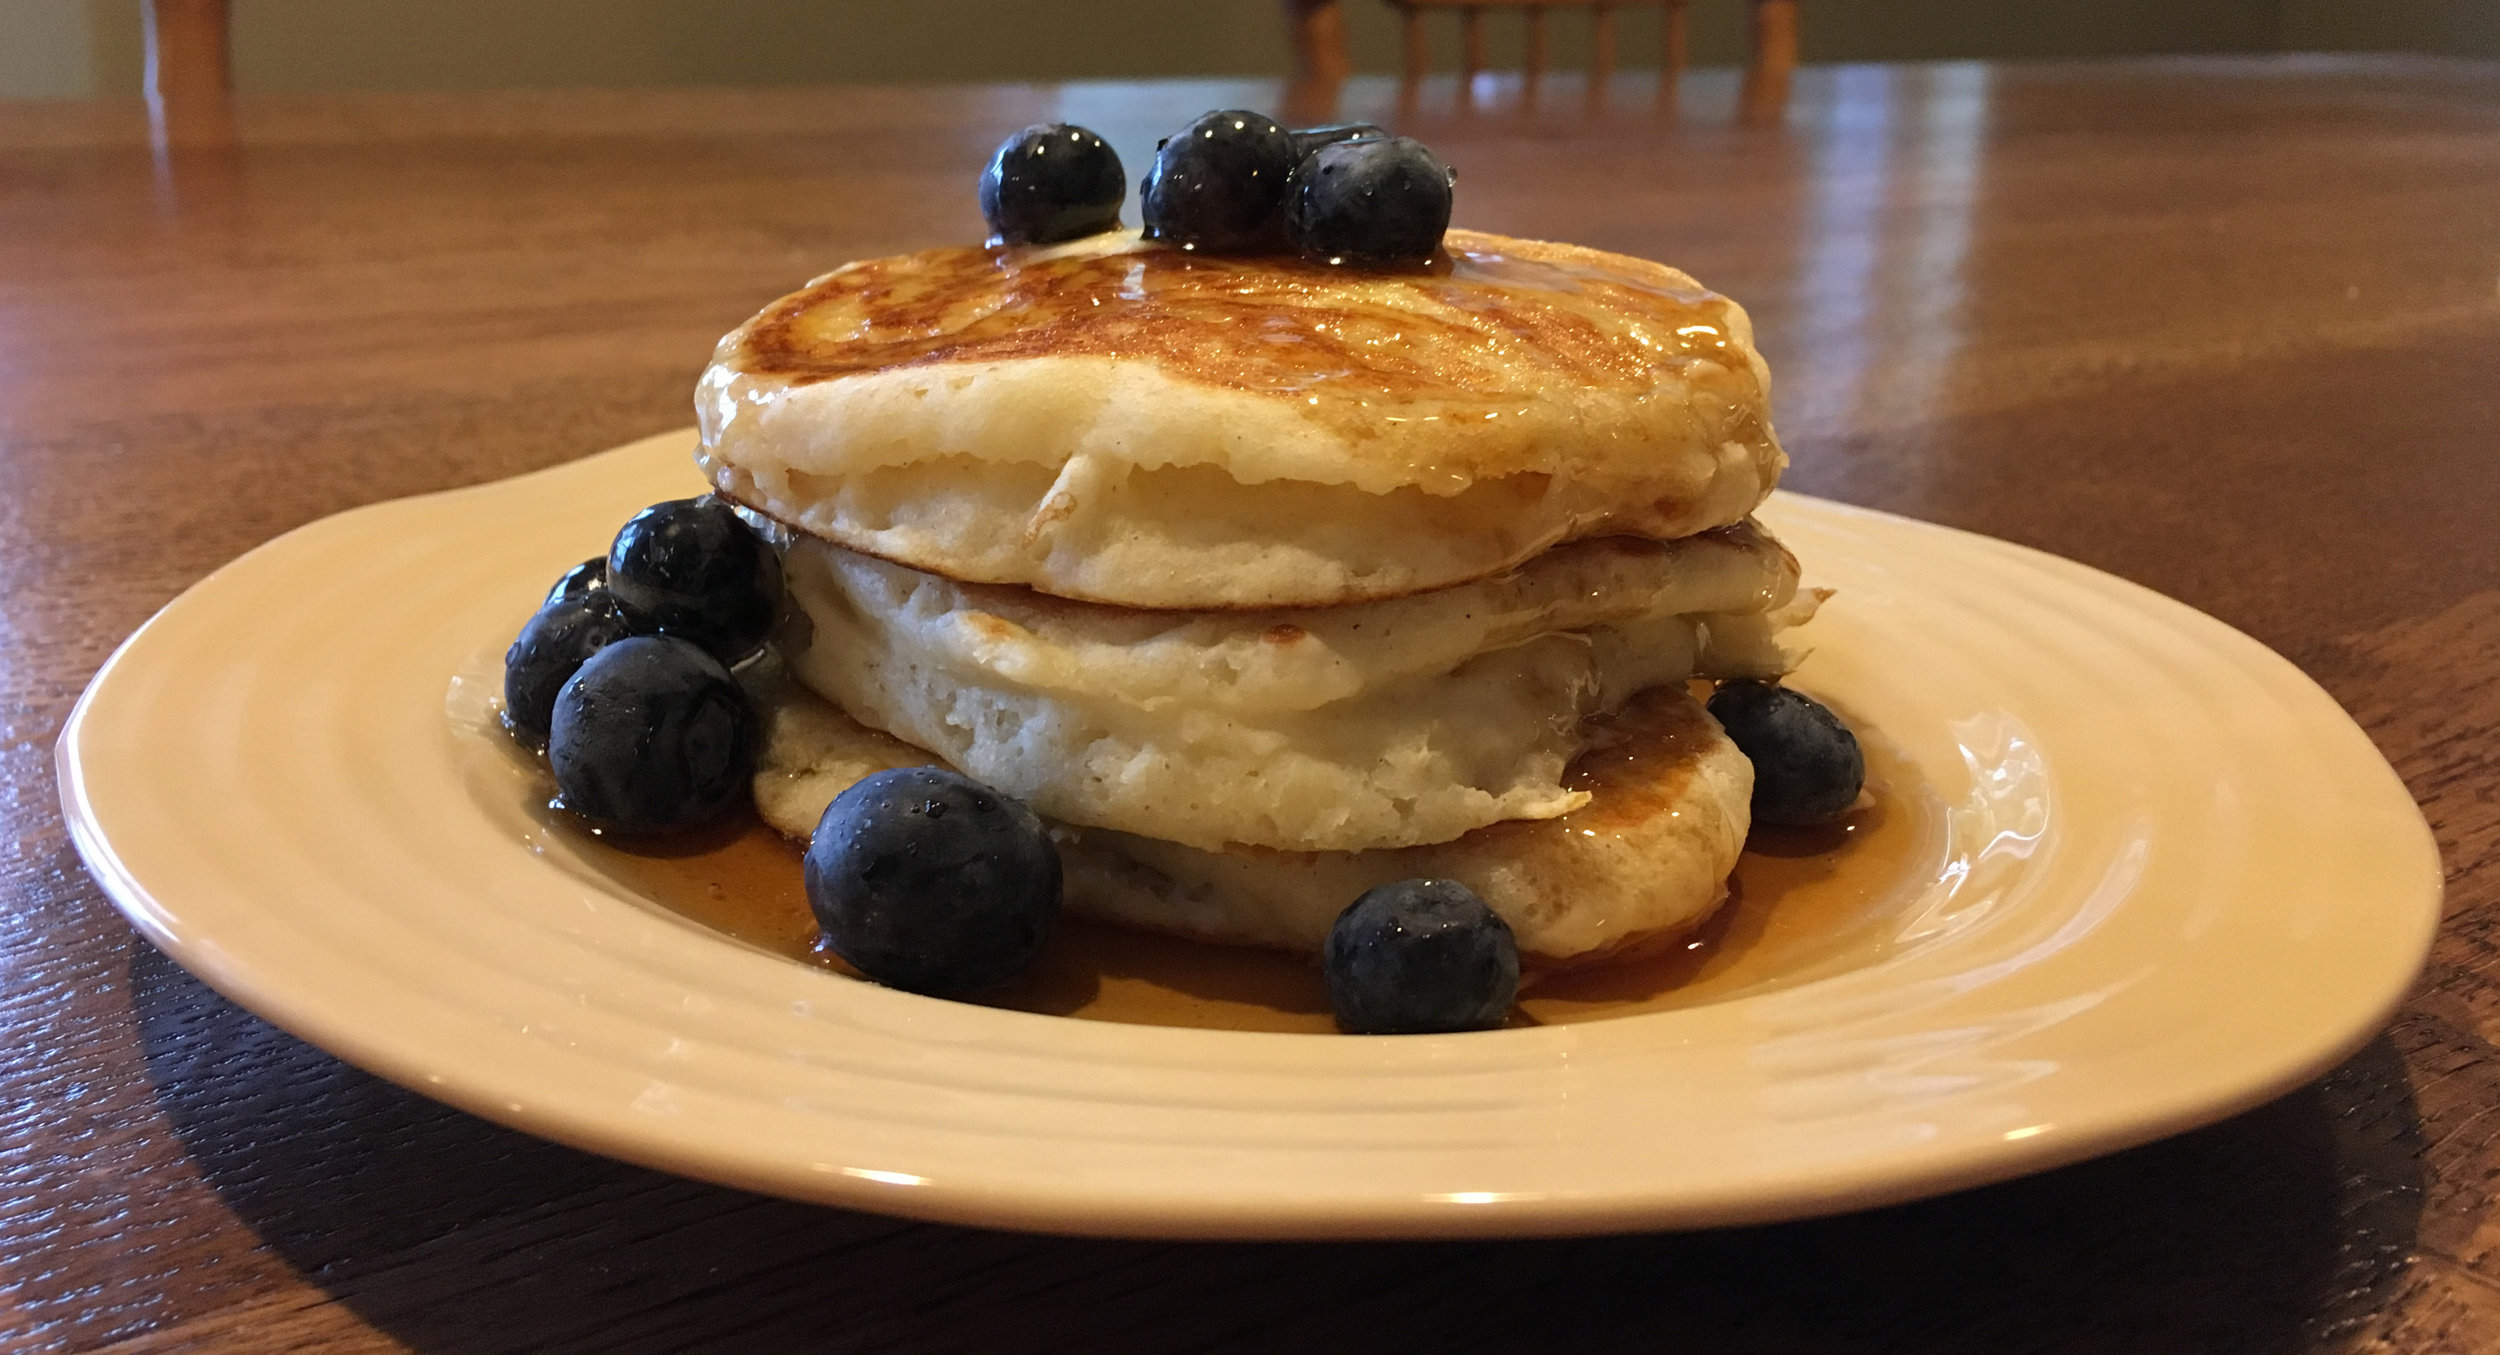 Farmhouse Buttermilk Pancakes - Gluten free and made with Cultured Buttermilk and organic blueberries!